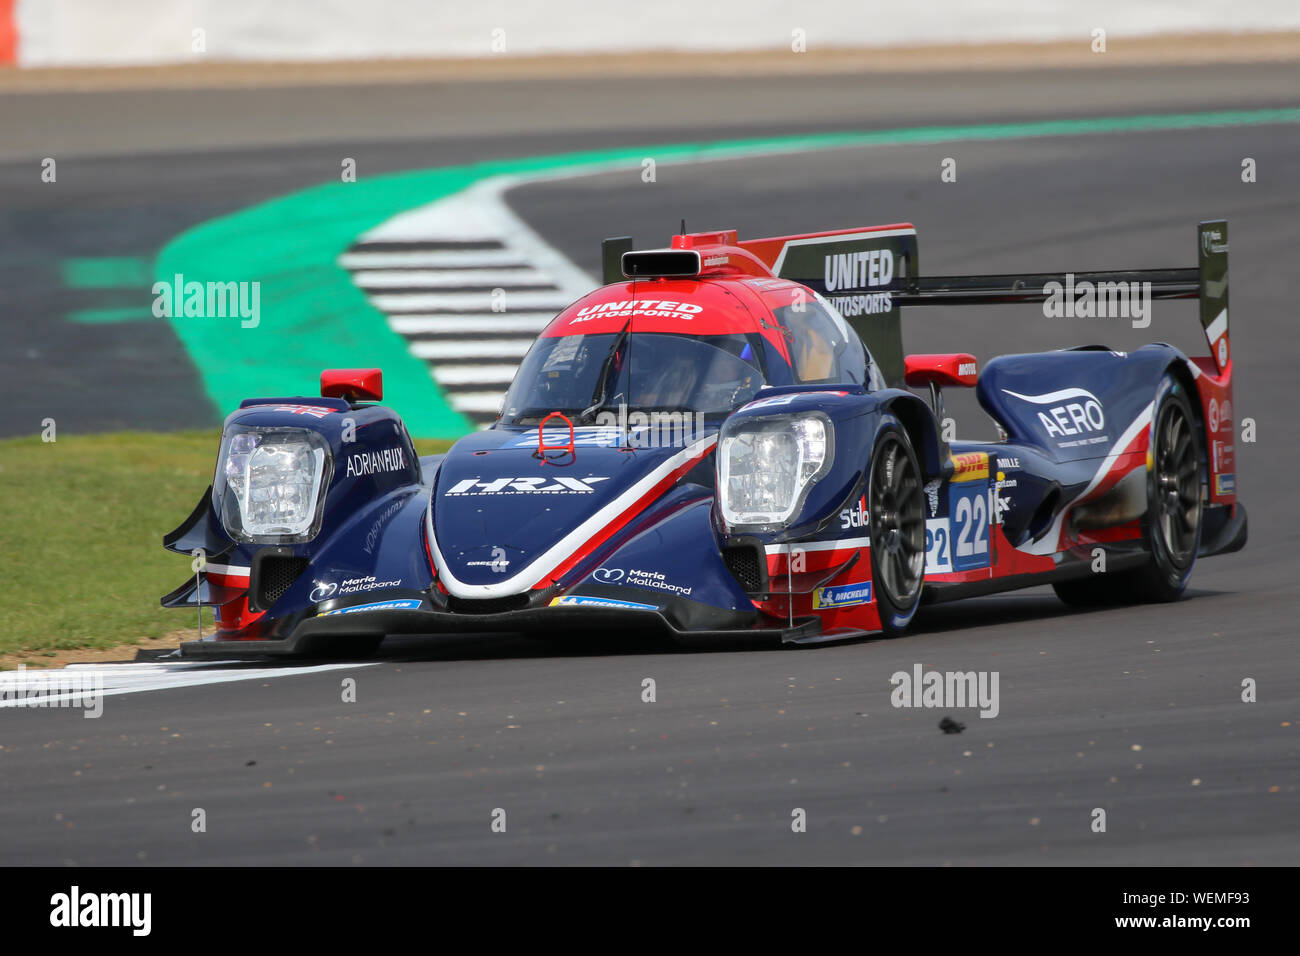 The #22 United Autosports Oreca 07-Gibson of Phil Hanson, Felipe Albuquerque and Paul Di Resta during practice for the FIA World Endurance Championshi Stock Photo